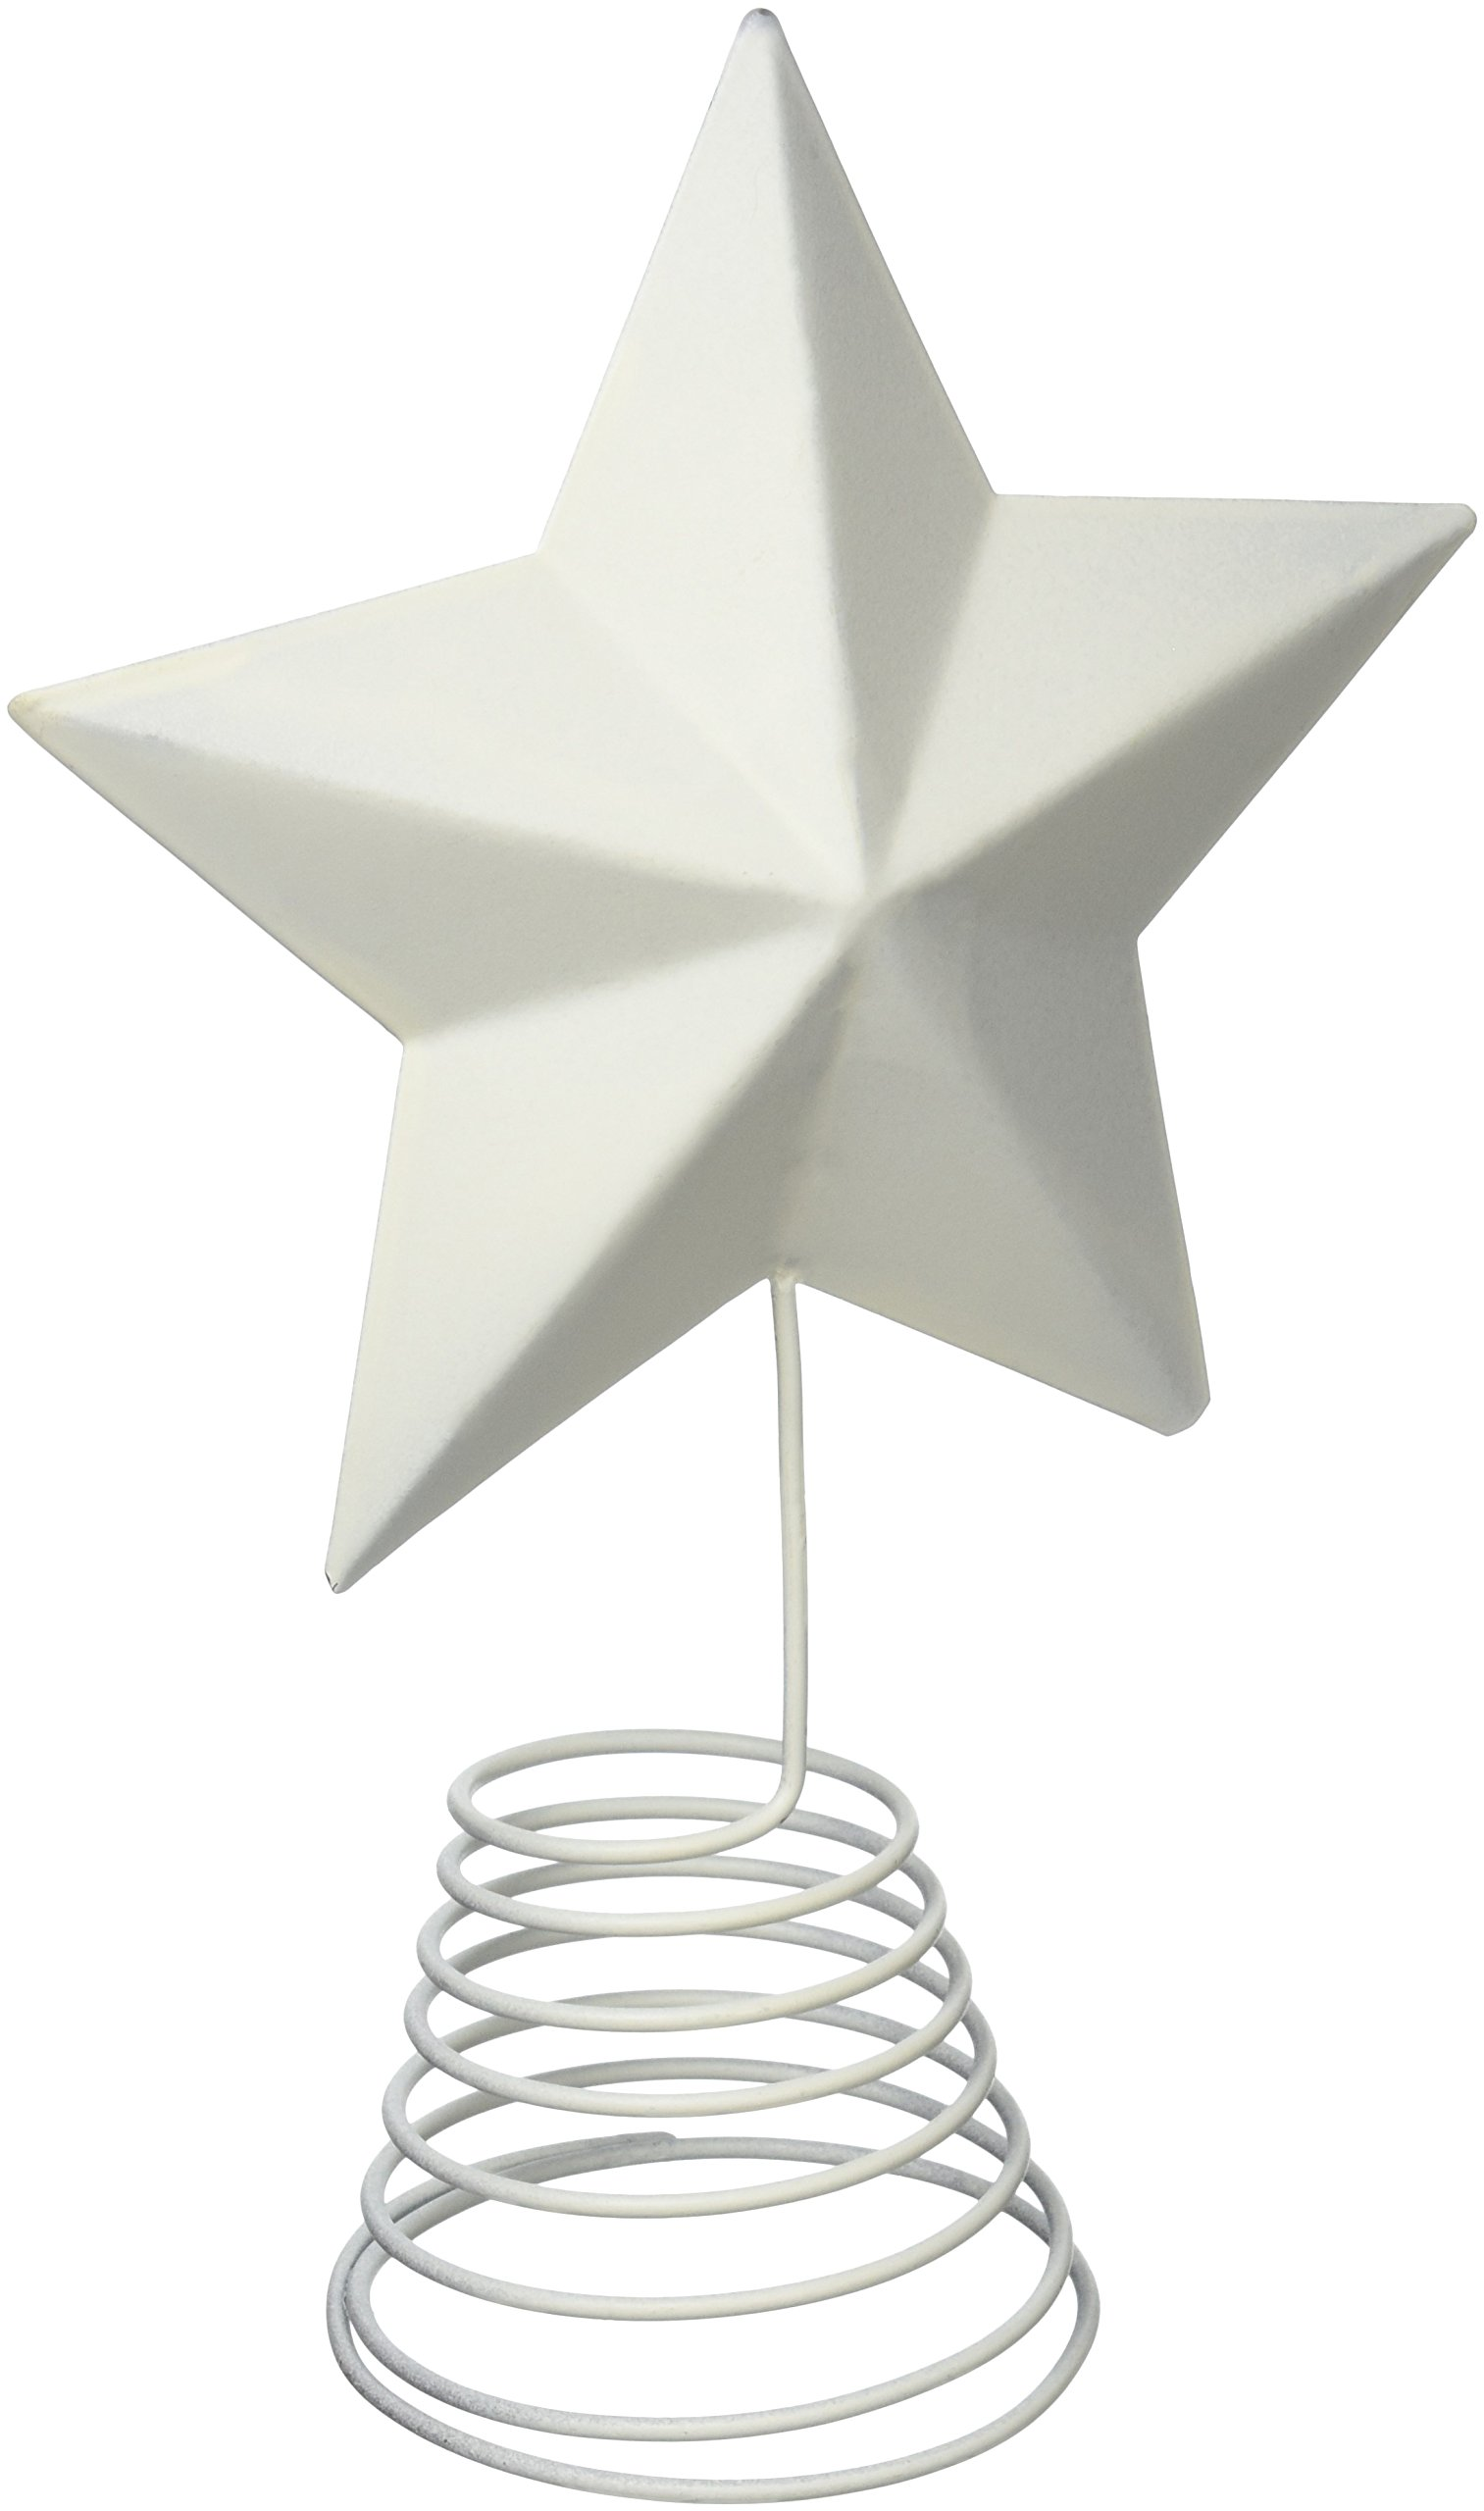 Craft Outlet Tin Star on Wire Table Topper, 12.5-Inch, Off-White, Set of 2